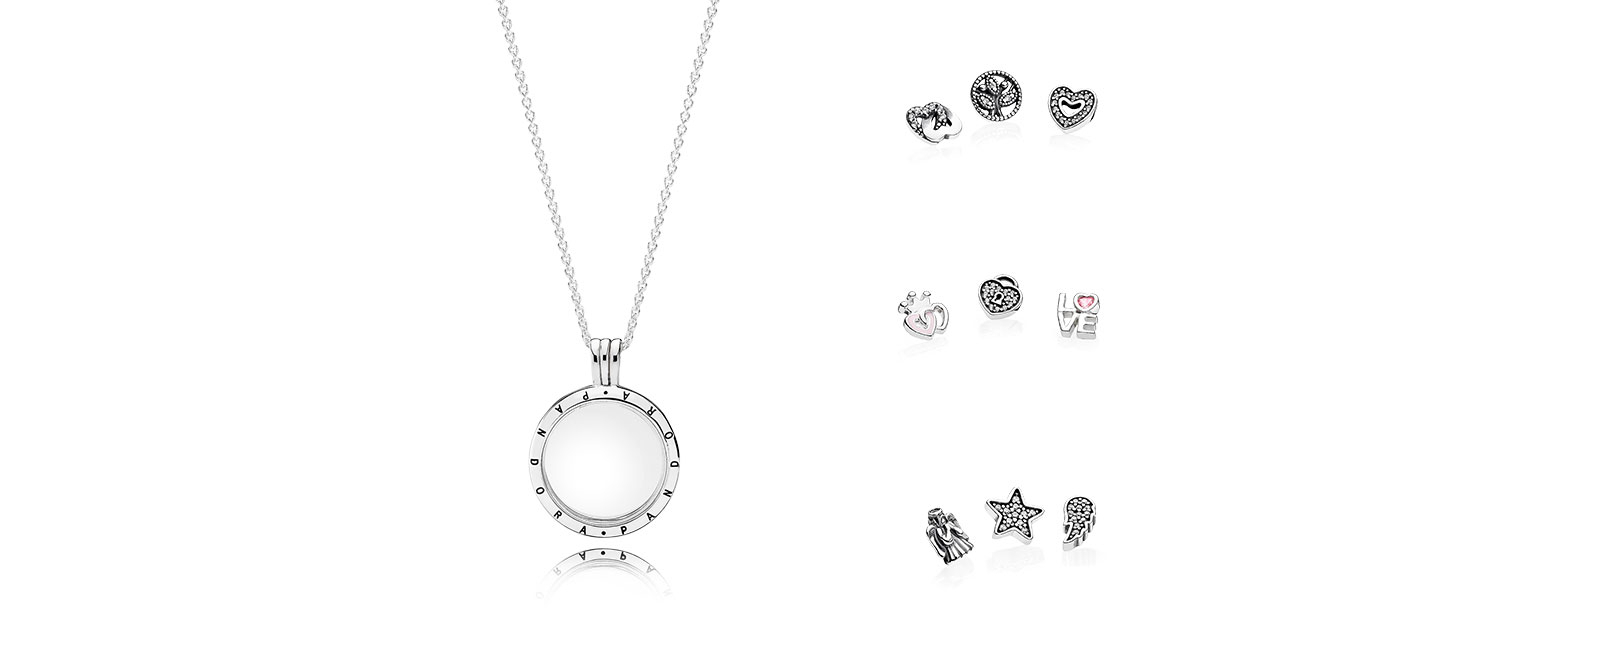 How We Saved $50 $80 On Pandora's Latest Floating Locket Necklace Throughout Most Popular Love & Family Petite Locket Charms Necklaces (View 8 of 25)